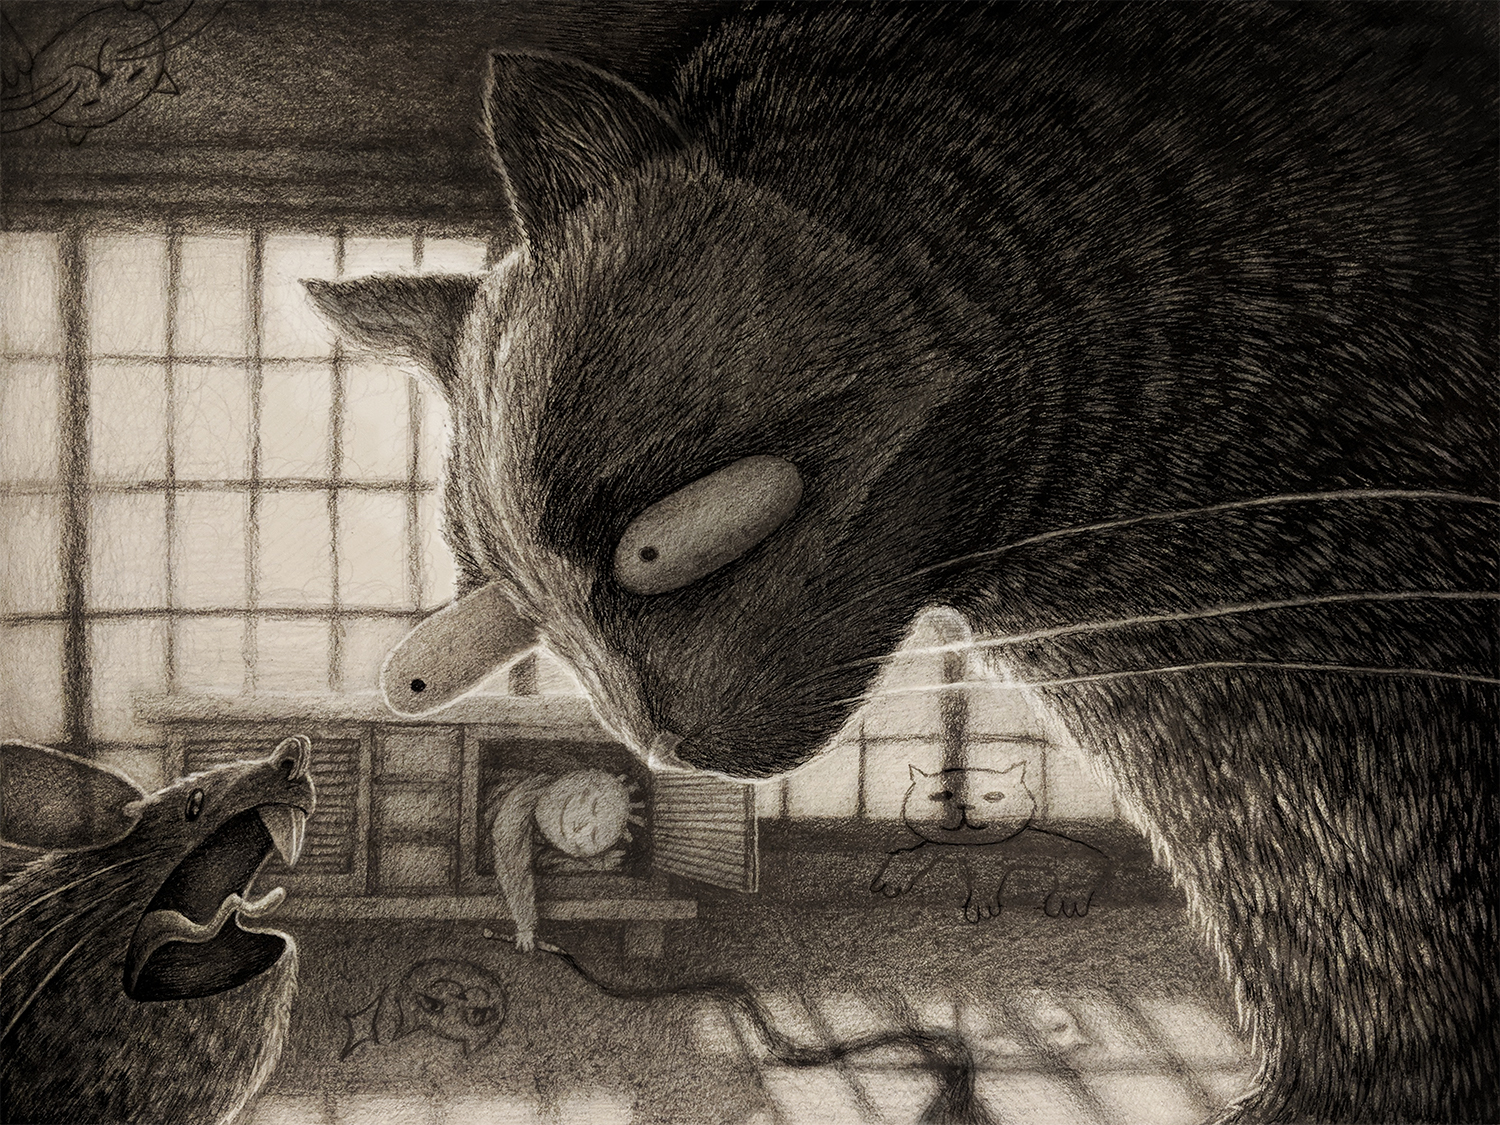 Boy Who Drew Cats - 2019   Graphite, Micron Pen, And Photoshop